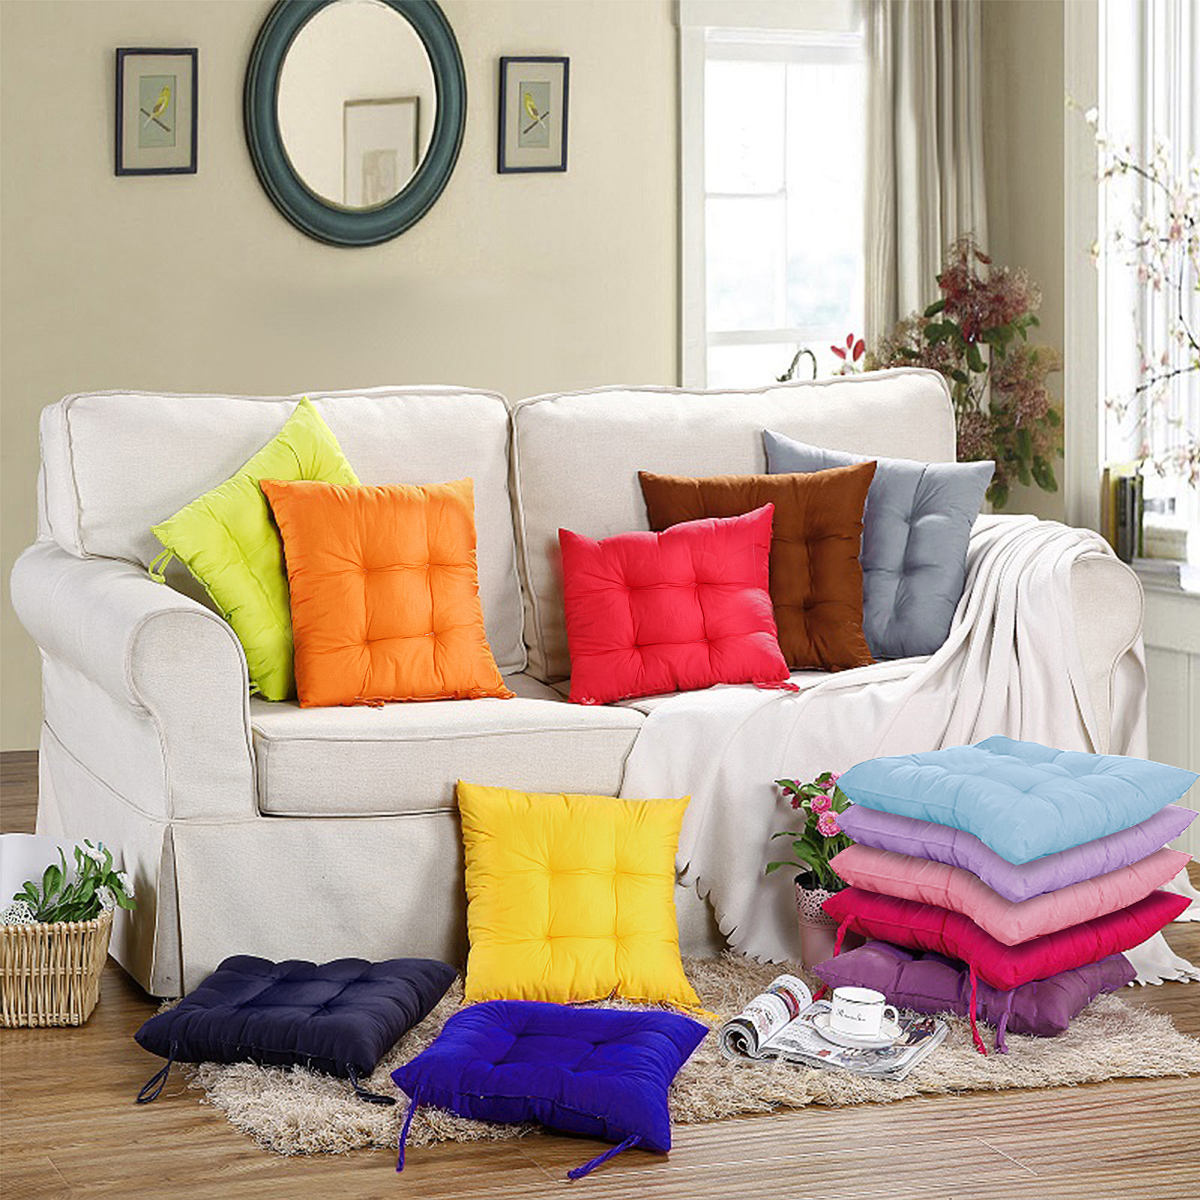 15.8*15.8inch Multi-Colors Non-Slip Chair Seat Cushion Pads Square Cotton Sit Tatami Mats Indoor Outdoor Comfortable Sofa Floor Garden Patio Home Kitchen Office Decor